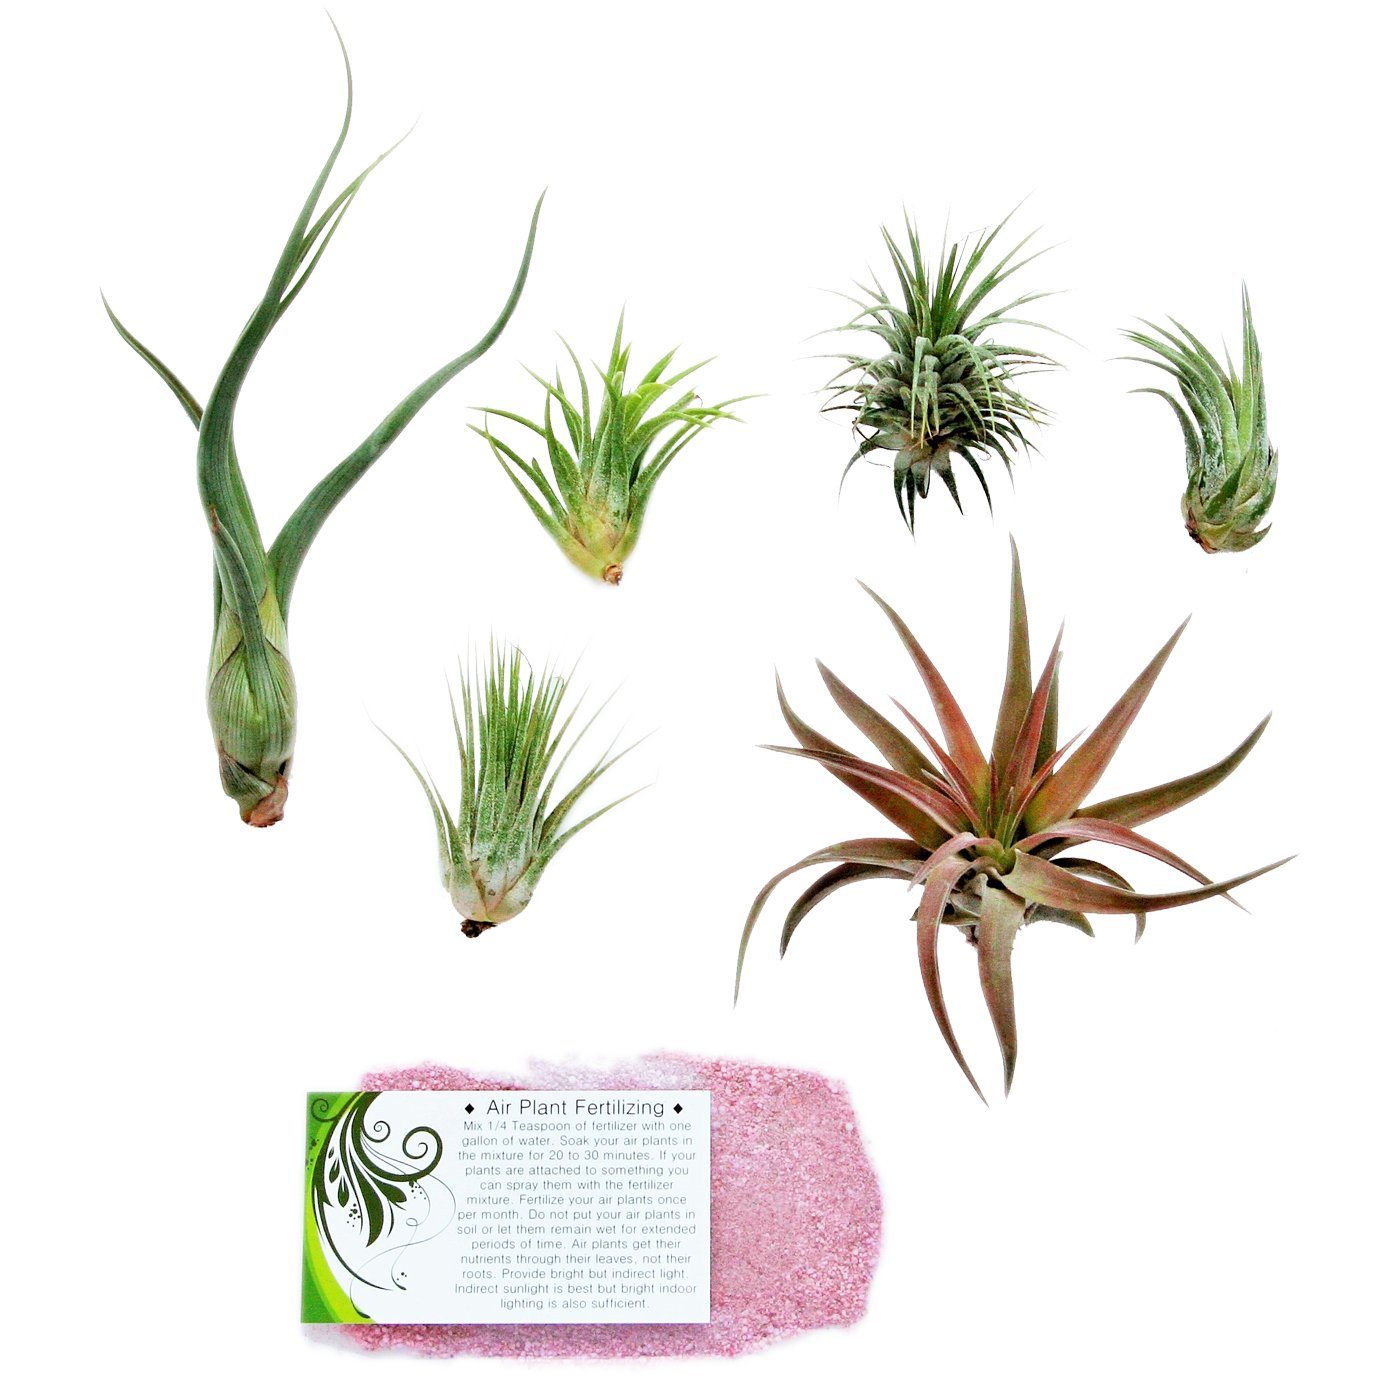 Air Plant Shop's Grab Bag of 6 Plants + Fertilizer Packet - Free PDF Air Plant Care eBook with Every Order - House Plants - Air Plant Variety - Fast Shipping from Florida